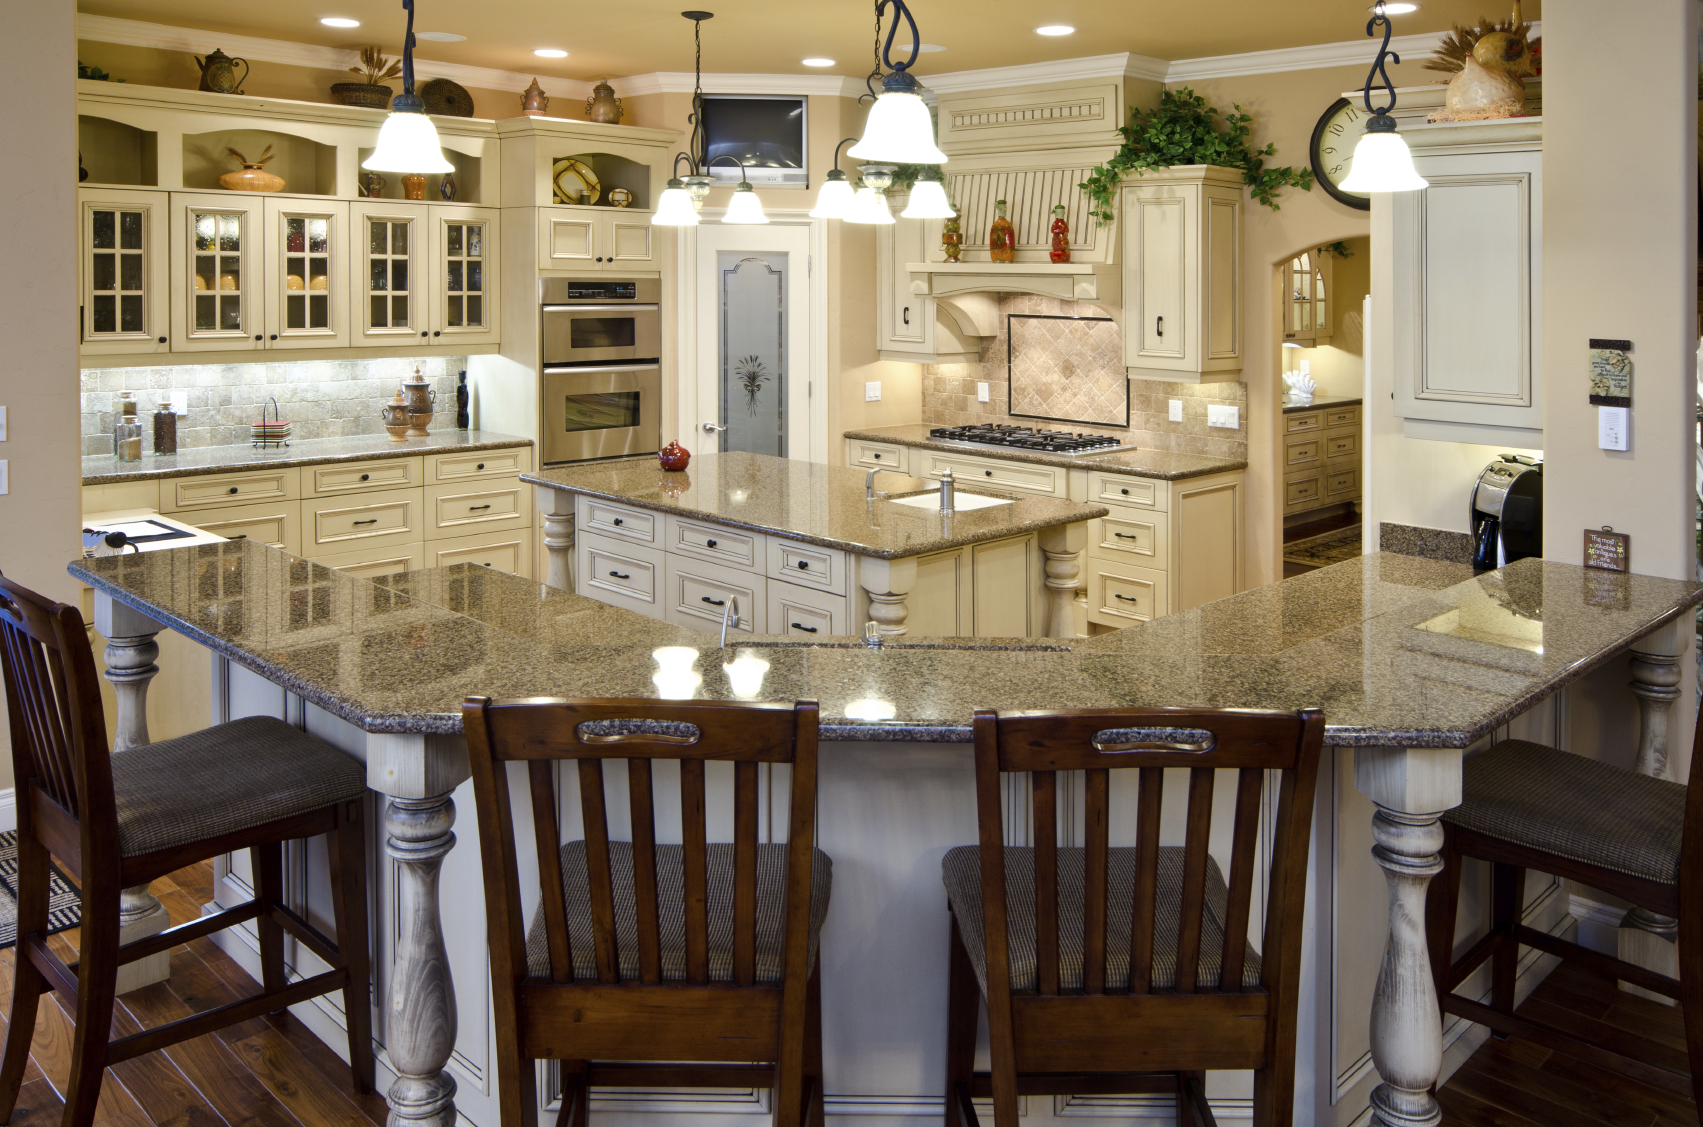 20 Of The Most Popular Kitchen Designs On Home Stratosphere